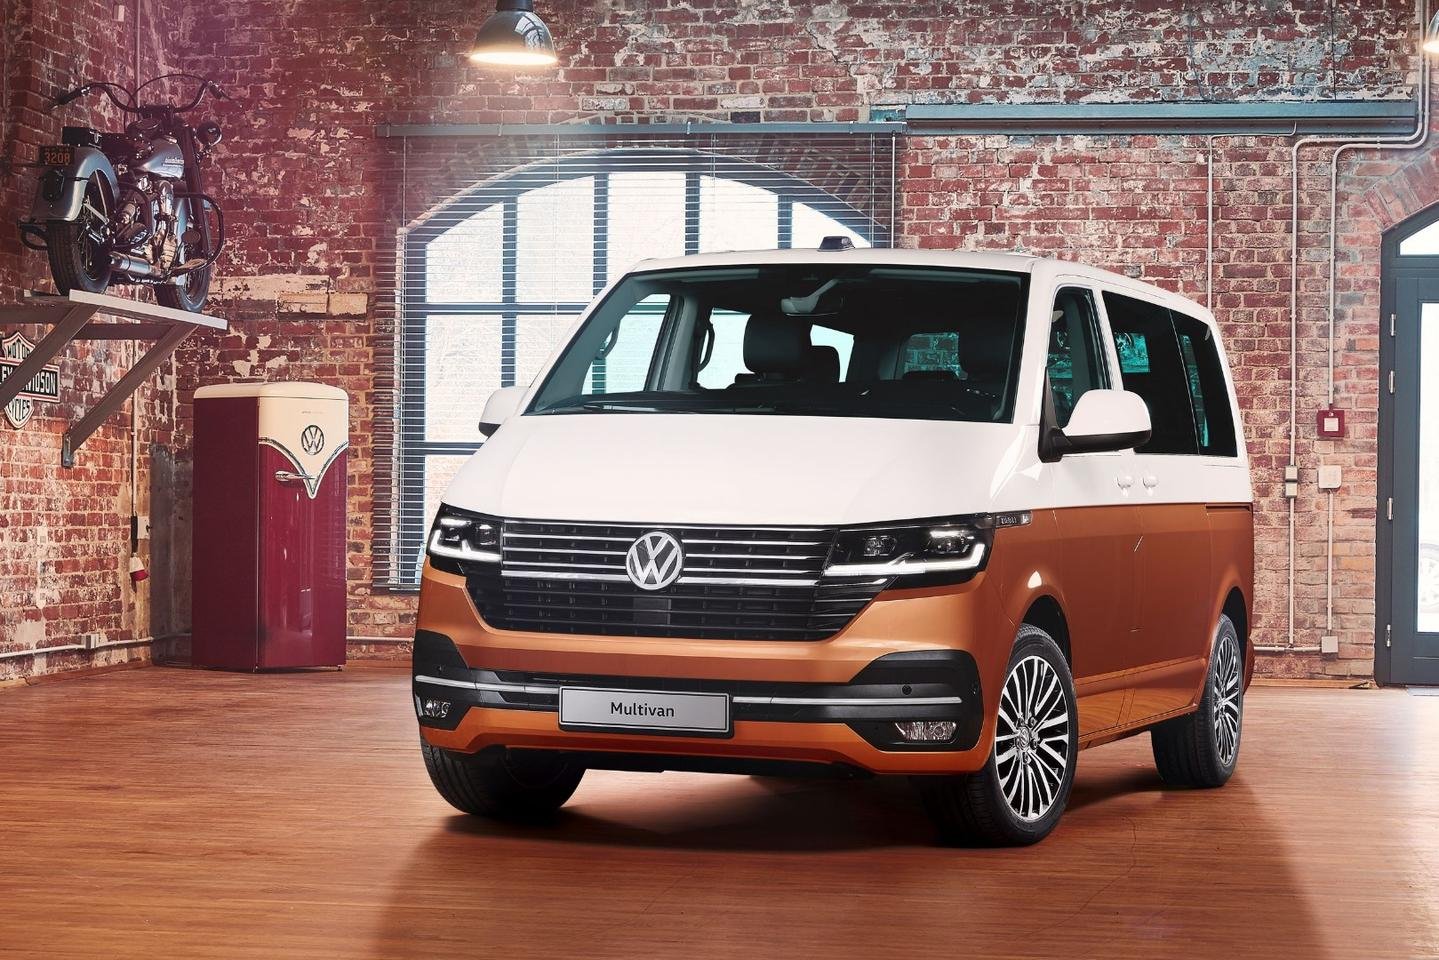 Volkswagen gives the T6 a sizable update